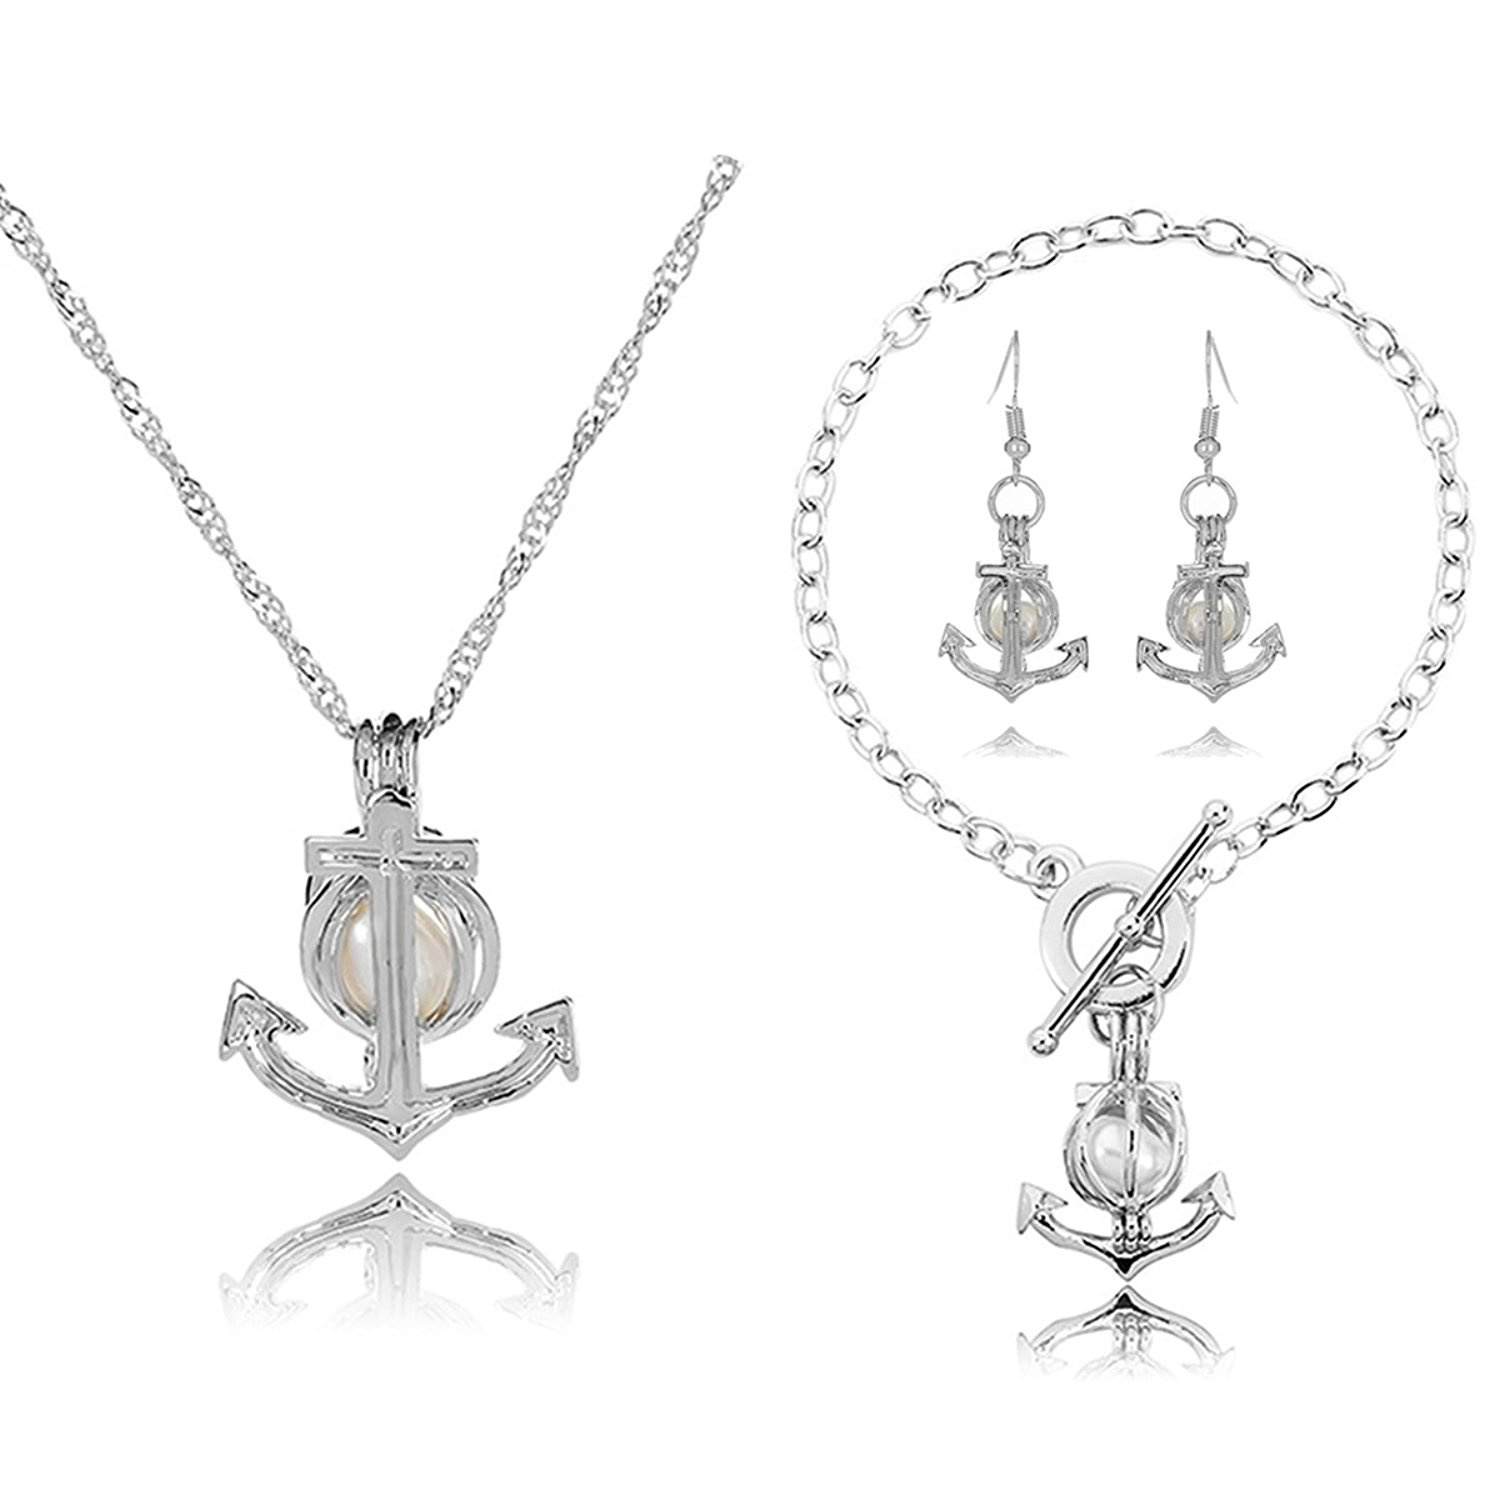 25cfaa782 Get Quotations · HENGSHENG Arrow Locket Cage Jewelry Set Pearl Oyster  Pendant with 1 PC Real Oval Pearl in